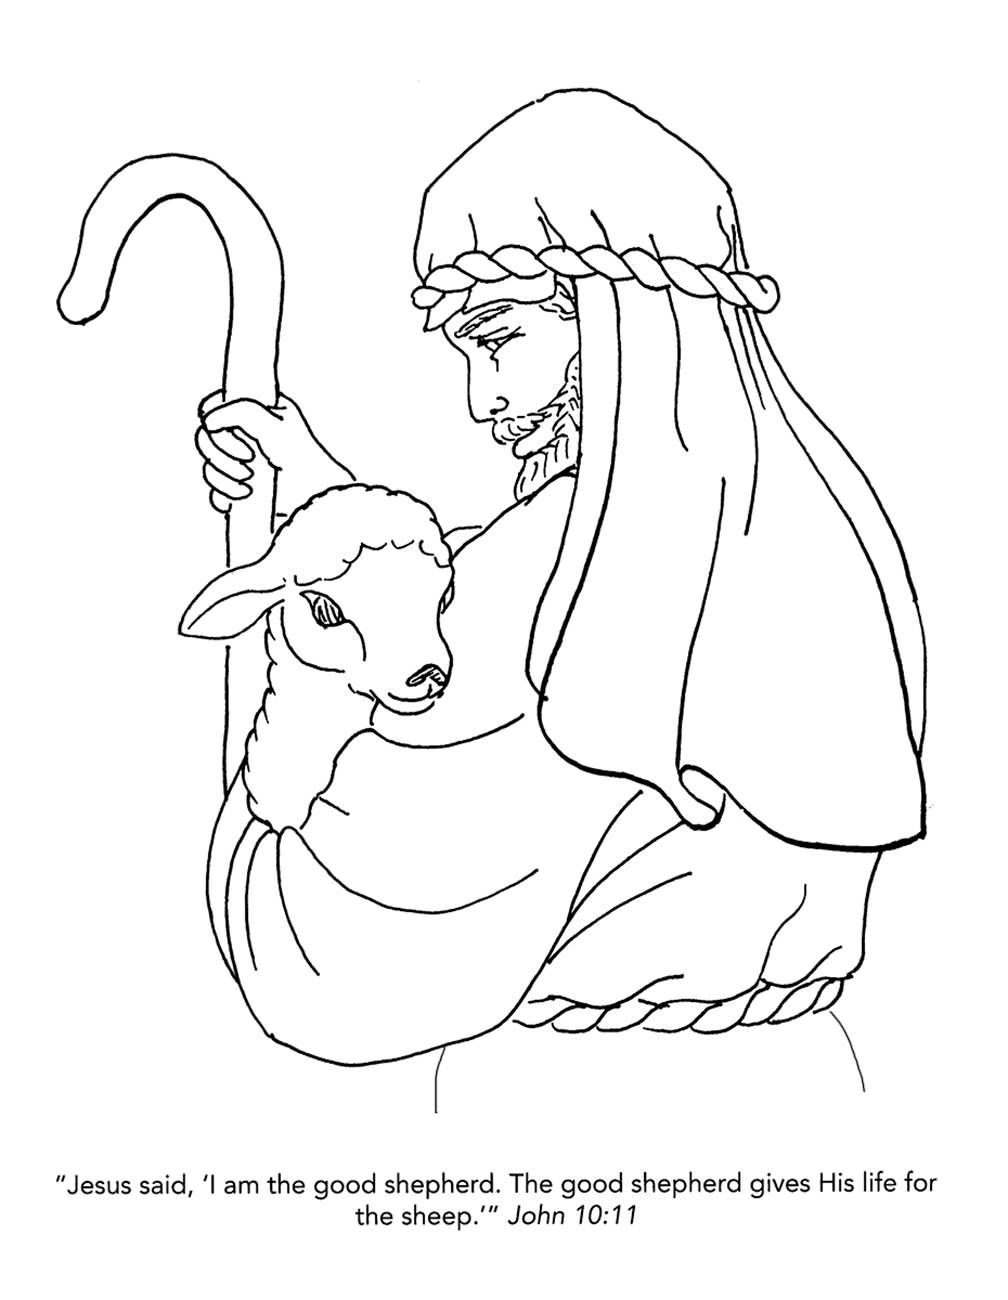 free christian coloring sheets free religious coloring pages at getdrawings free download free sheets coloring christian